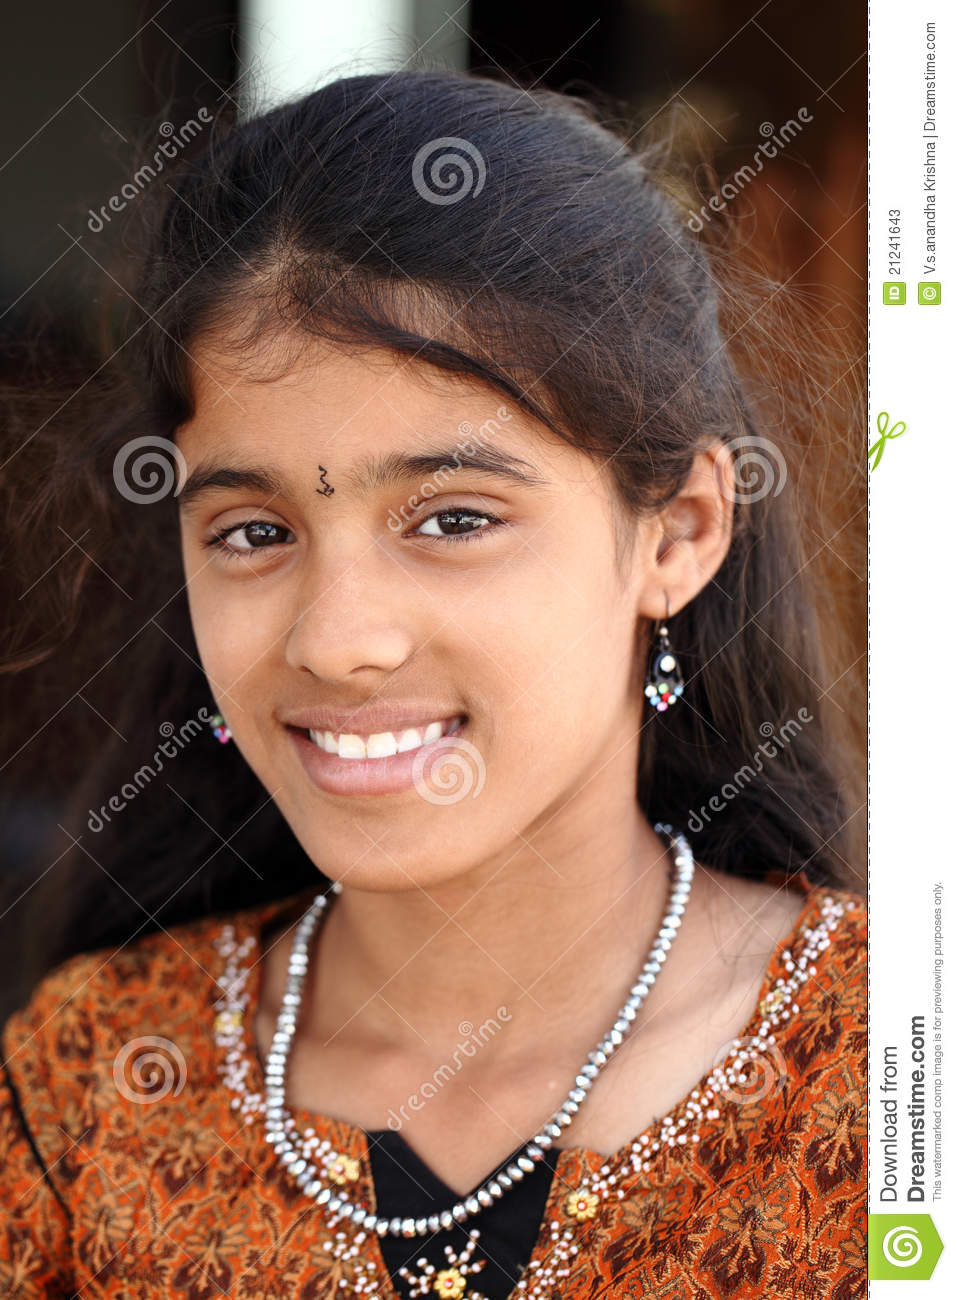 Cute Indian Teen Girl Stock Image Image Of Face, Small - 21241643